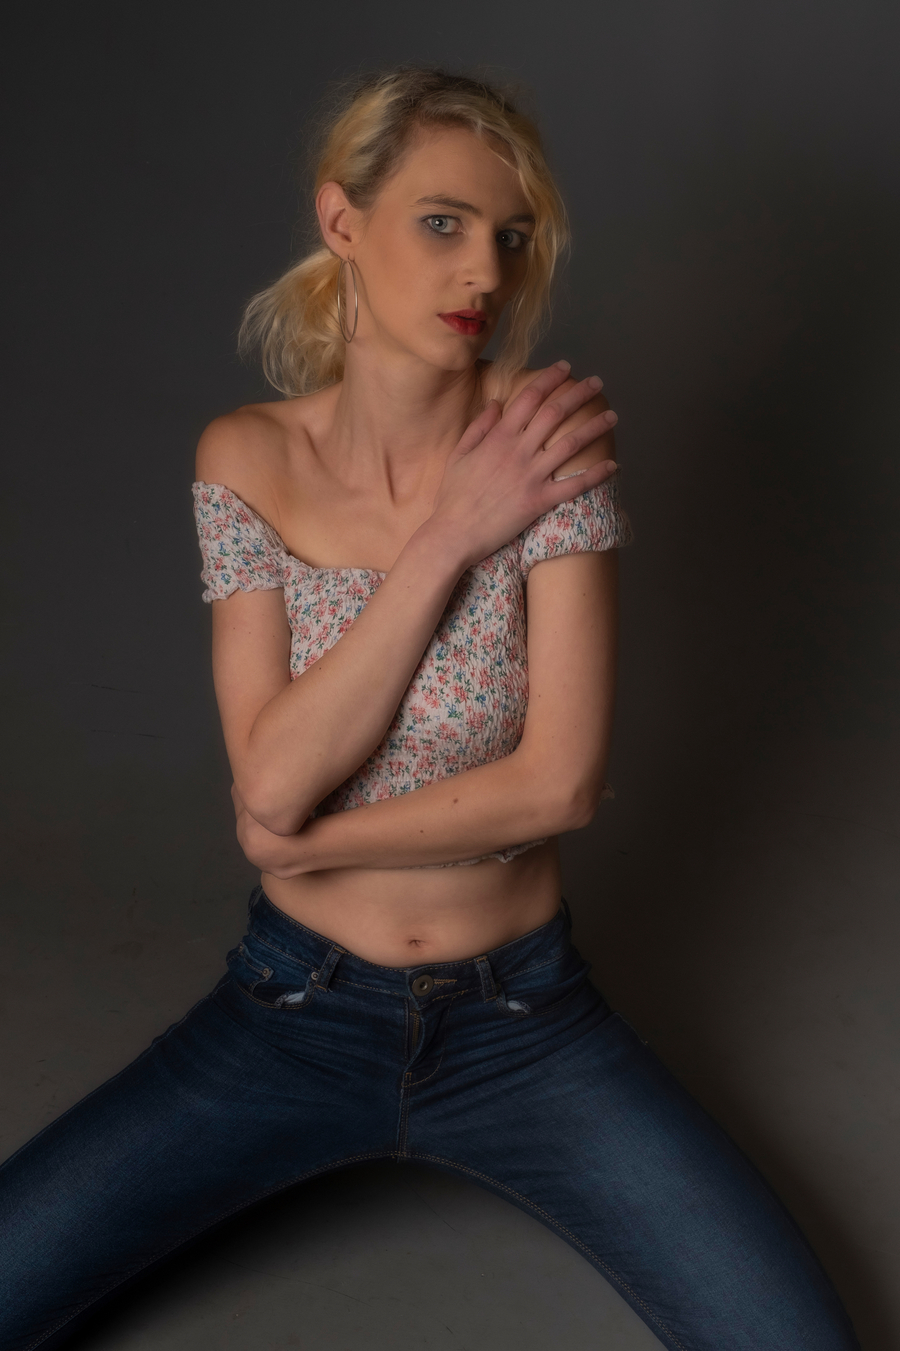 Photography by nikontogf, Model Sacha sutton / Uploaded 10th October 2021 @ 03:36 PM